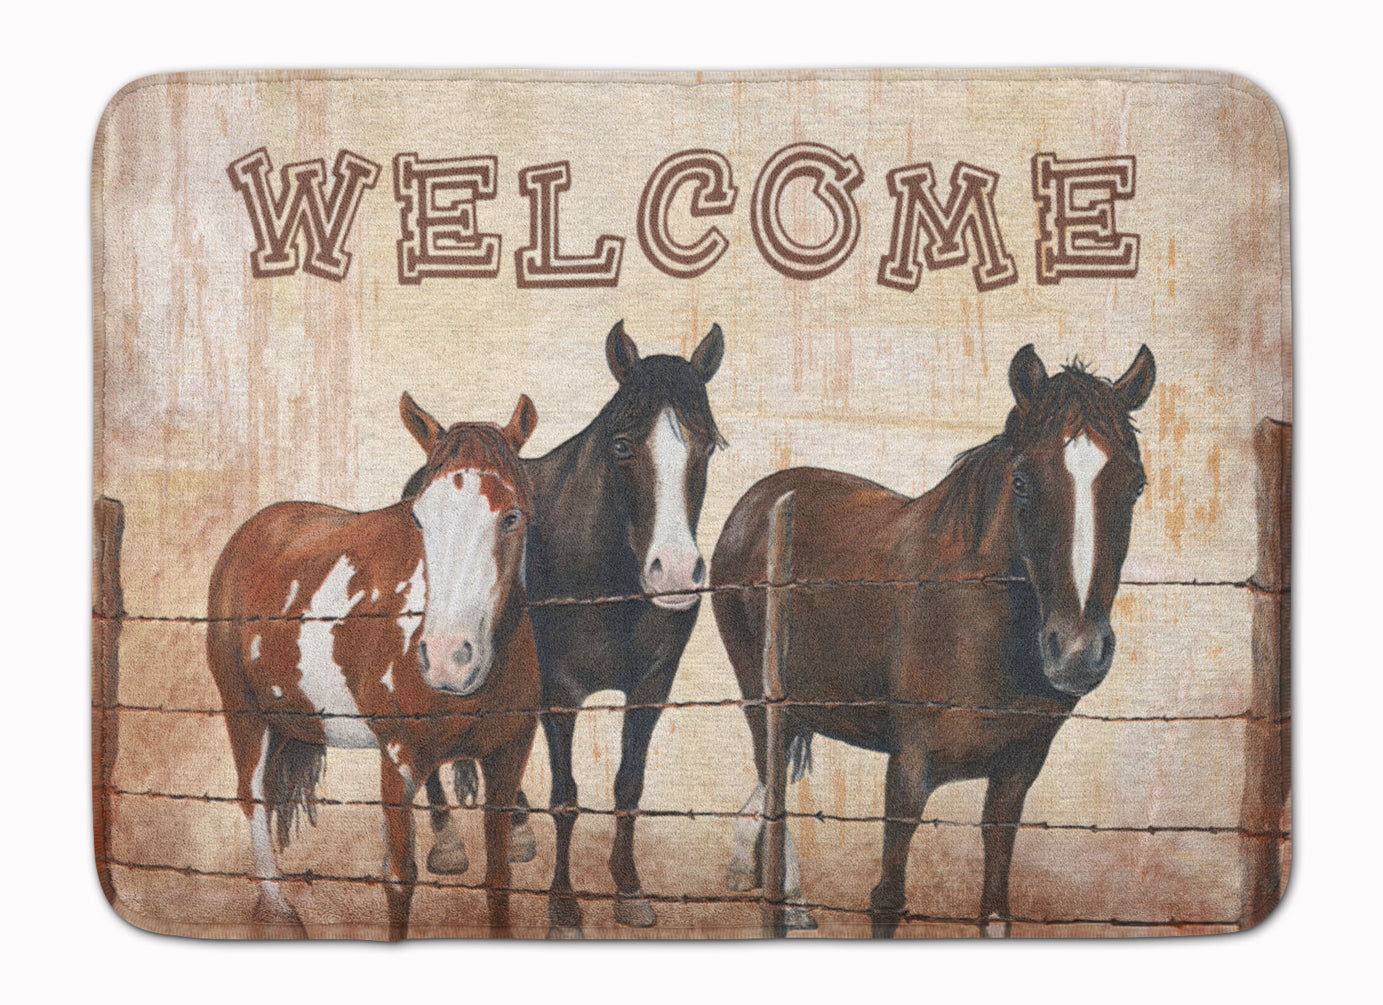 Welcome Mat with Horses Machine Washable Memory Foam Mat SB3059RUG by Caroline's Treasures